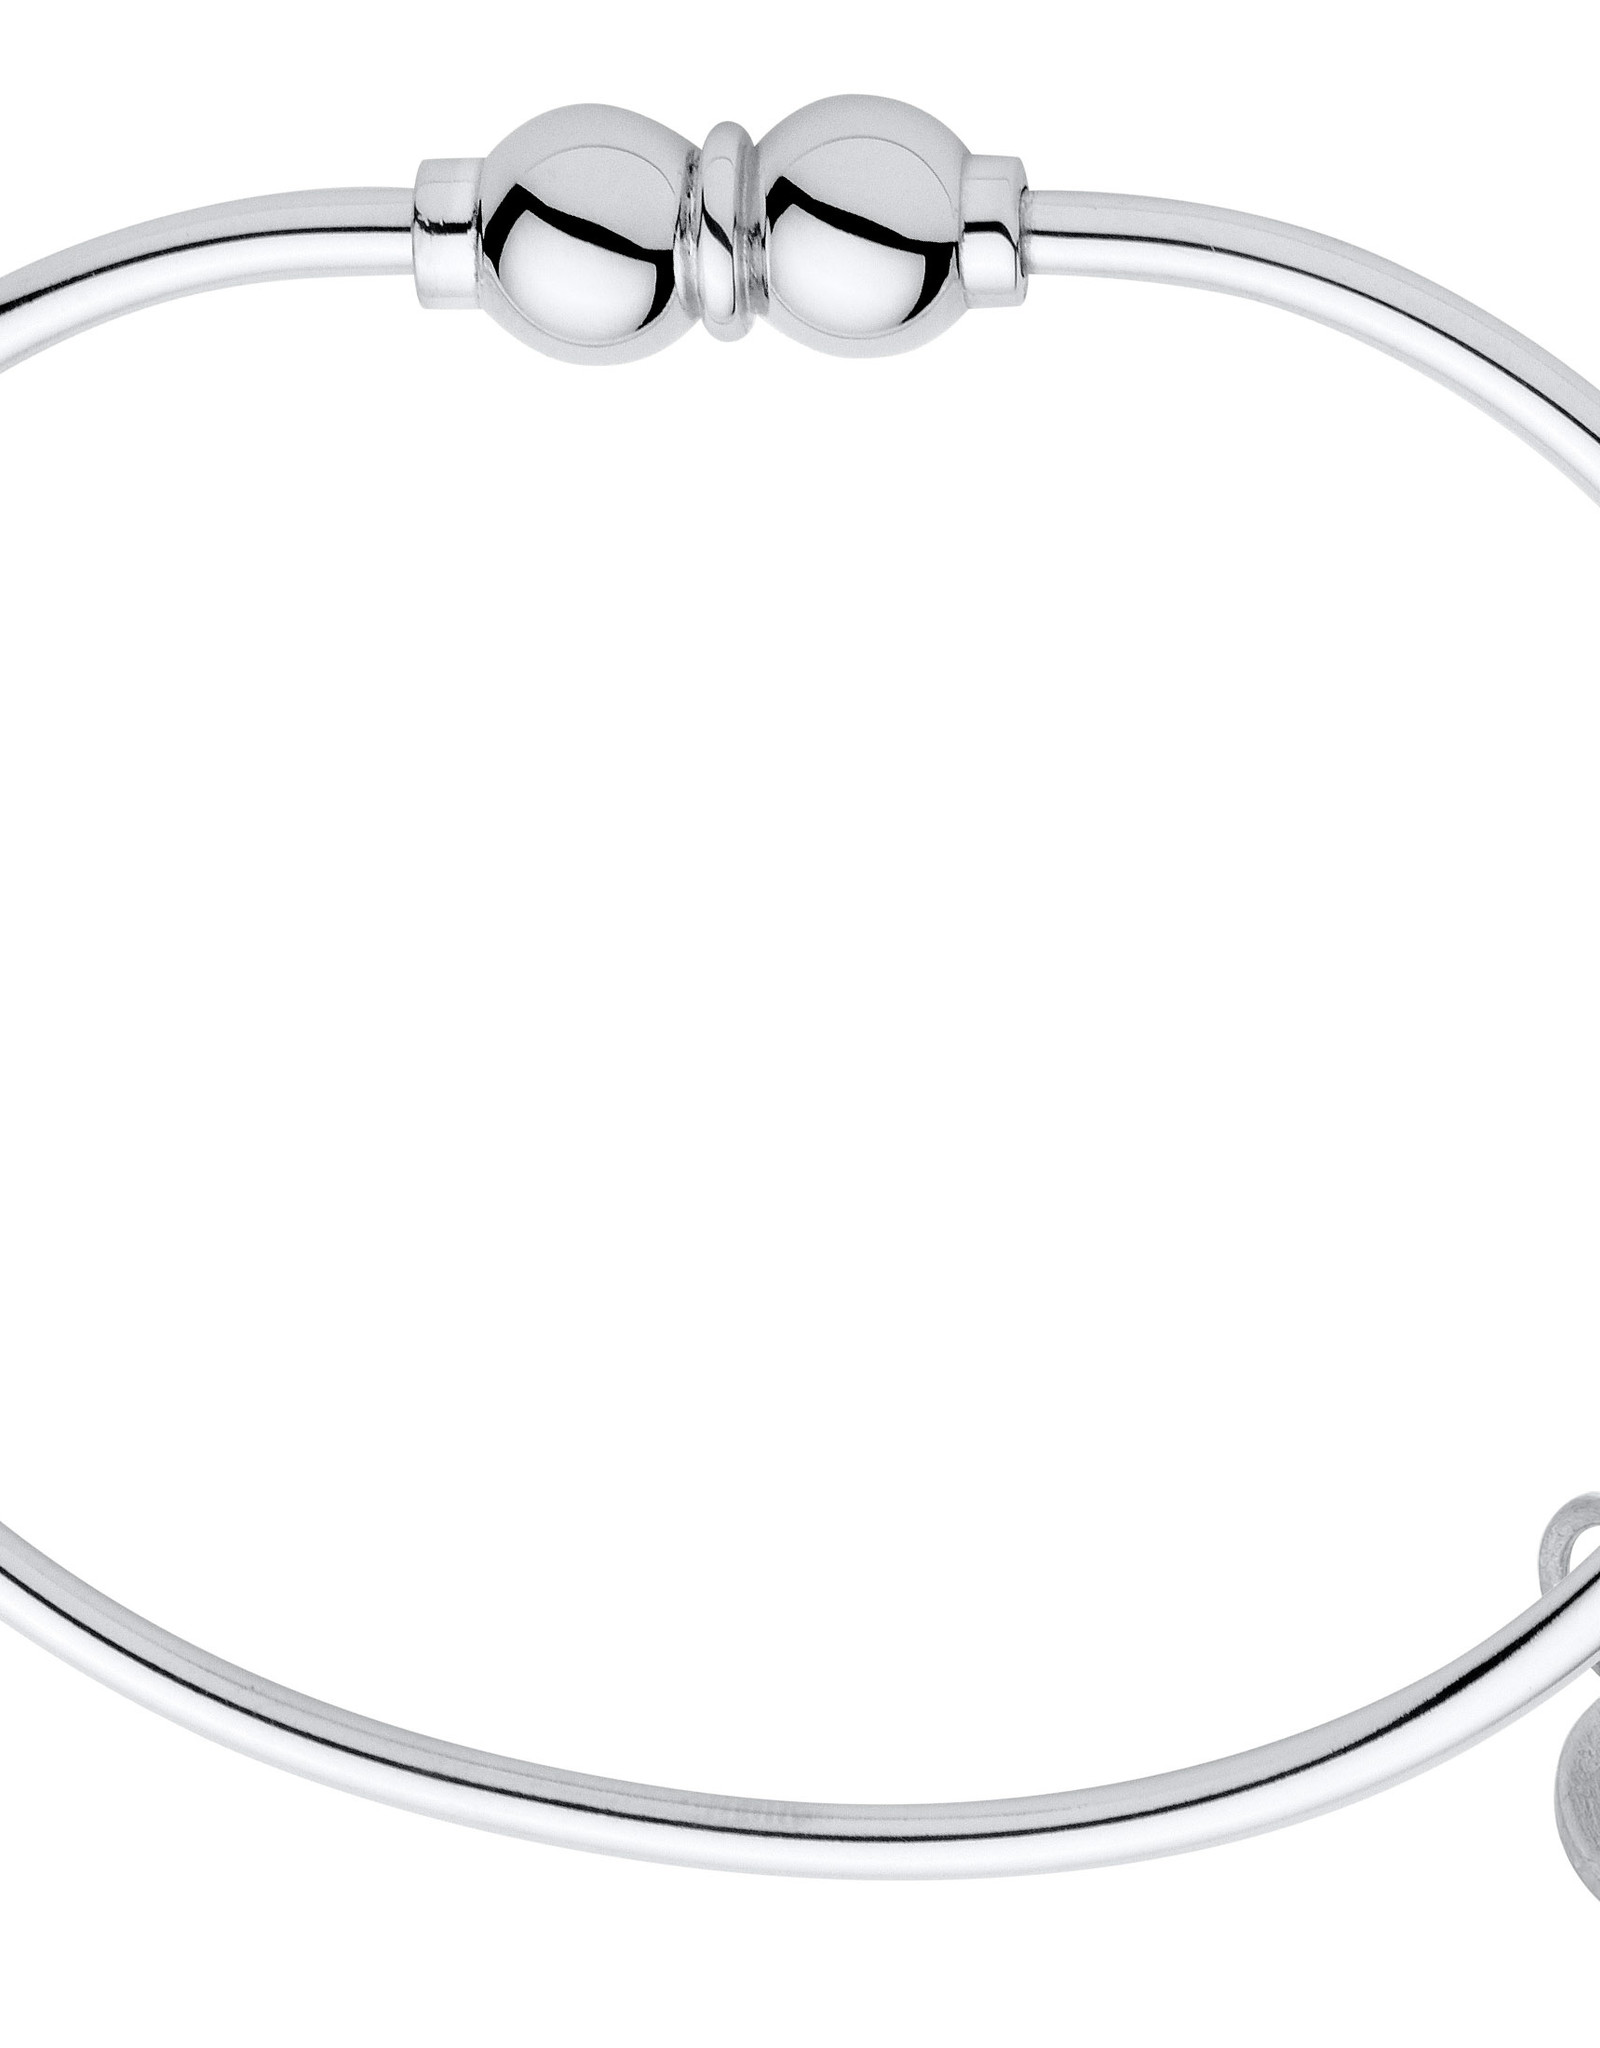 """LeStage - 6.5"""" The Classic Cape Cod Double Ball Bracelet - Sterling Silver with a Sterling Silver Ball 6.5"""""""